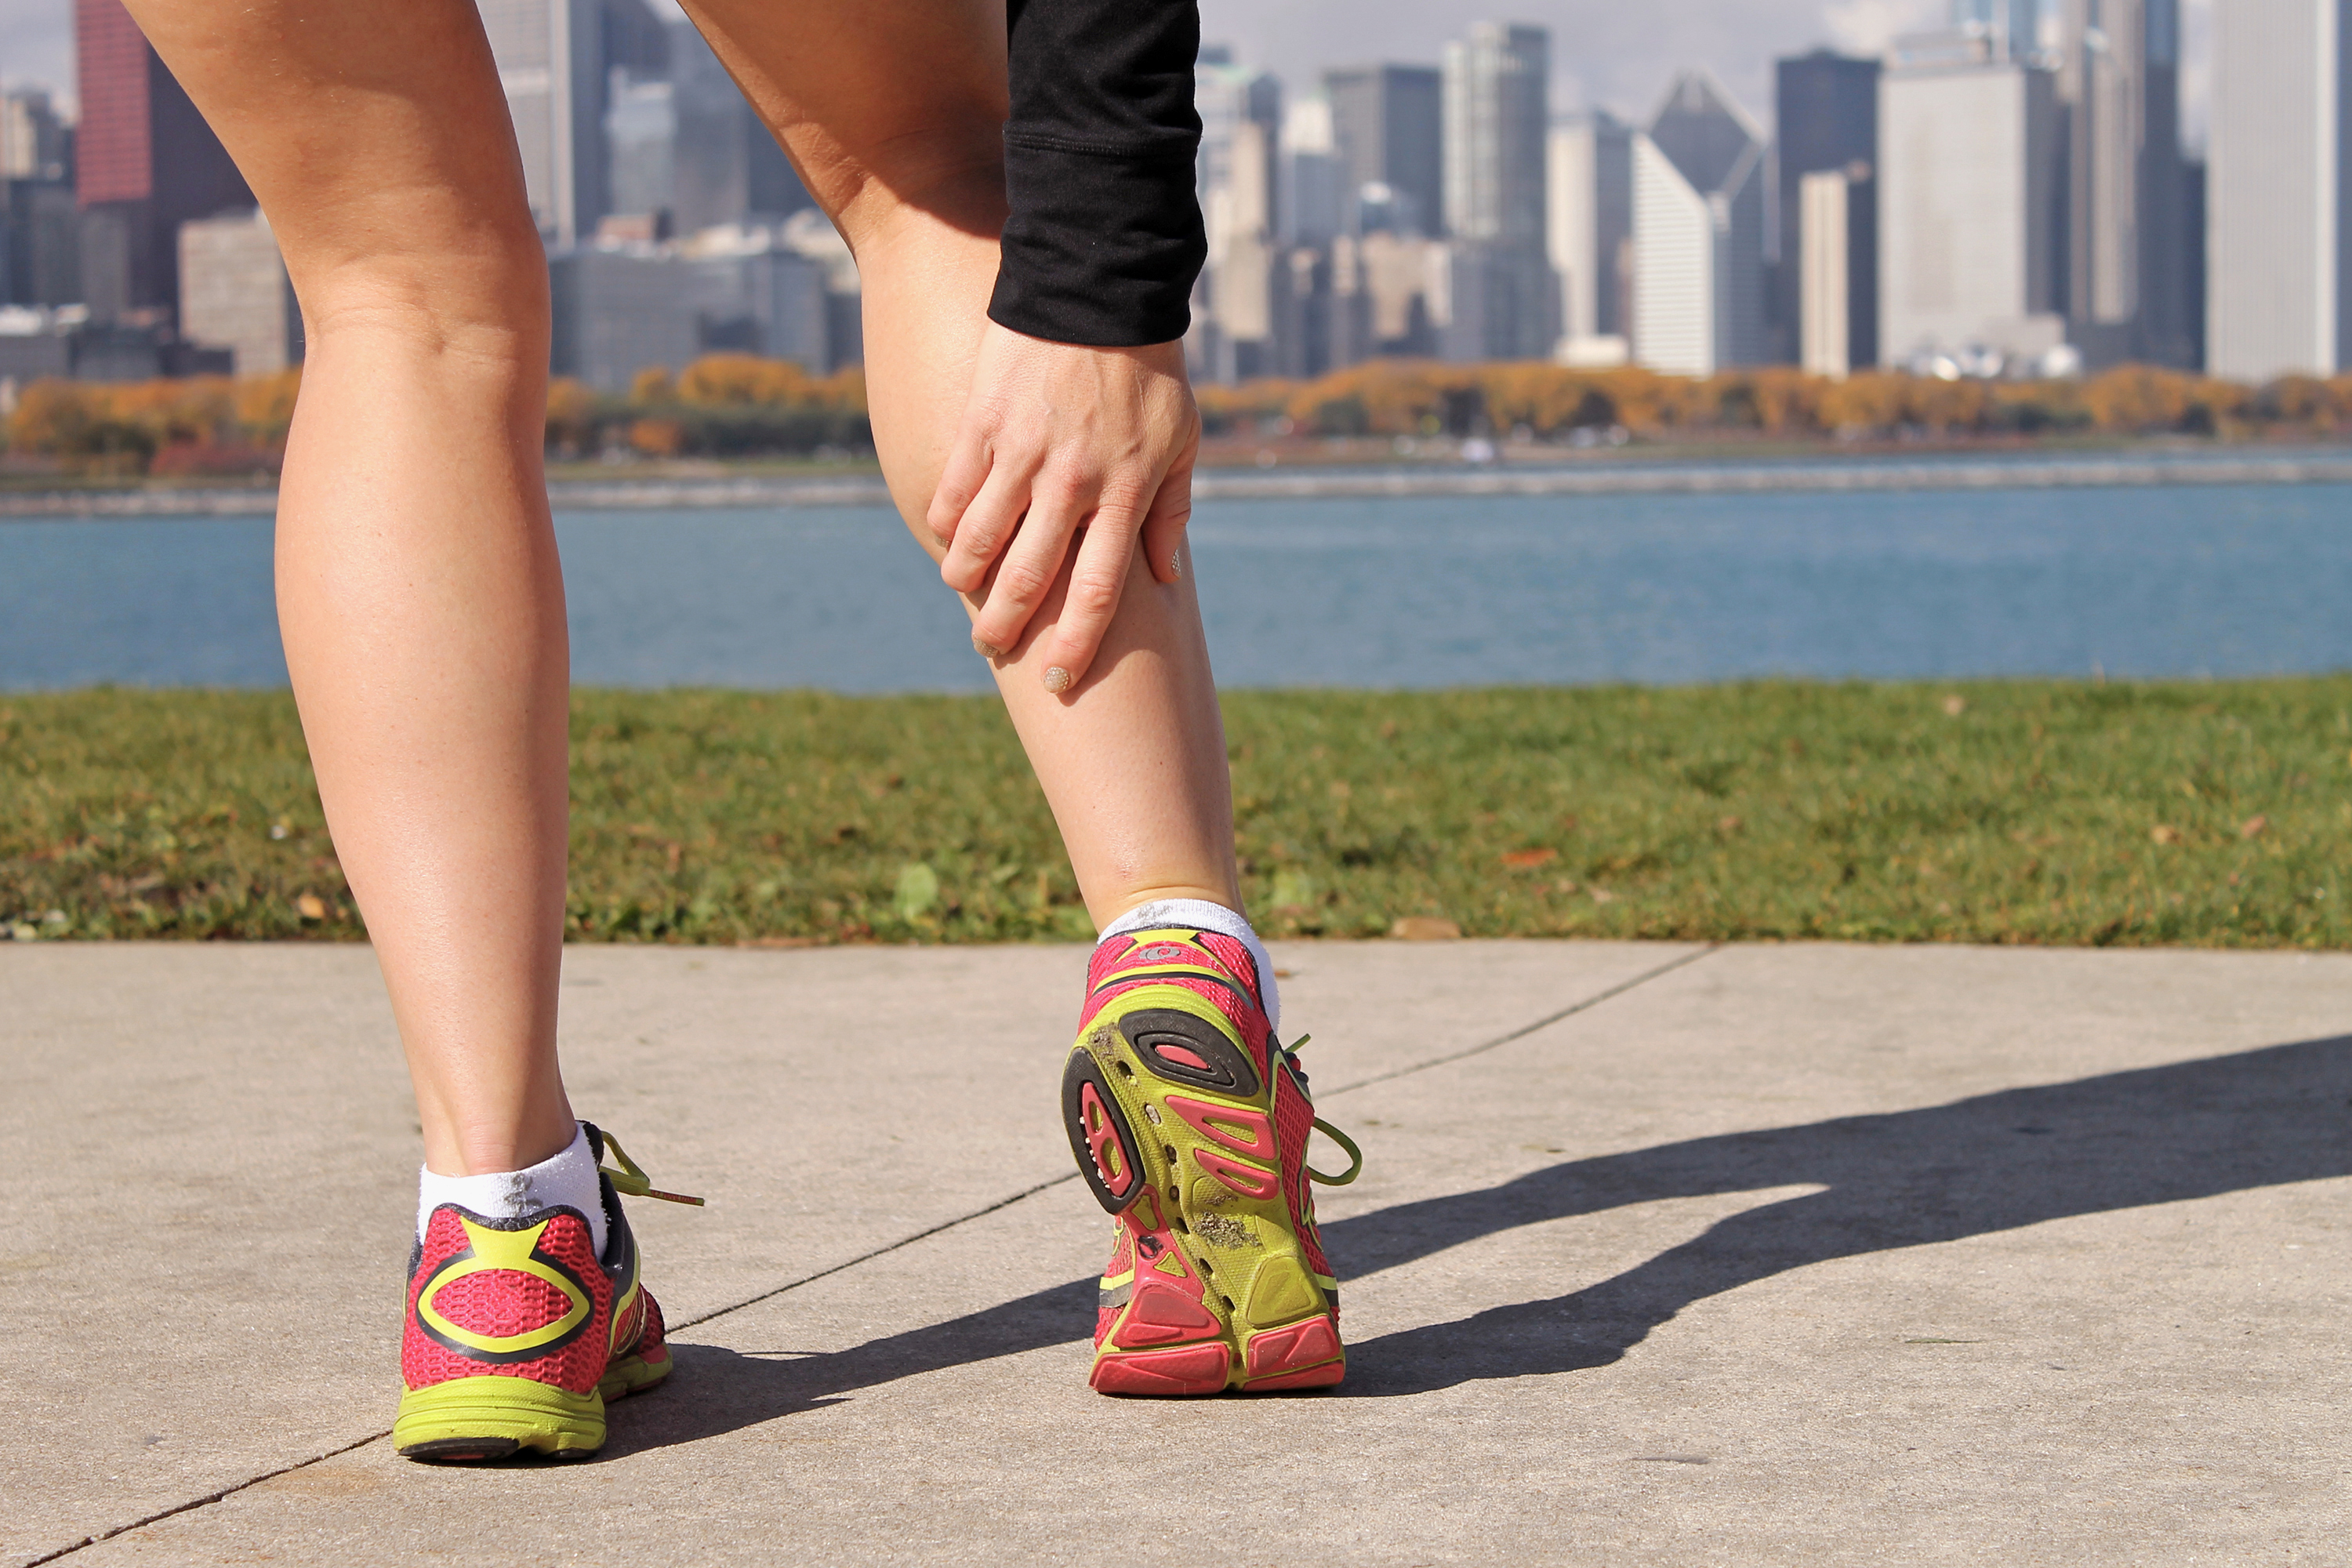 How to Reduce Calf Pain When Running | LIVESTRONG.COM